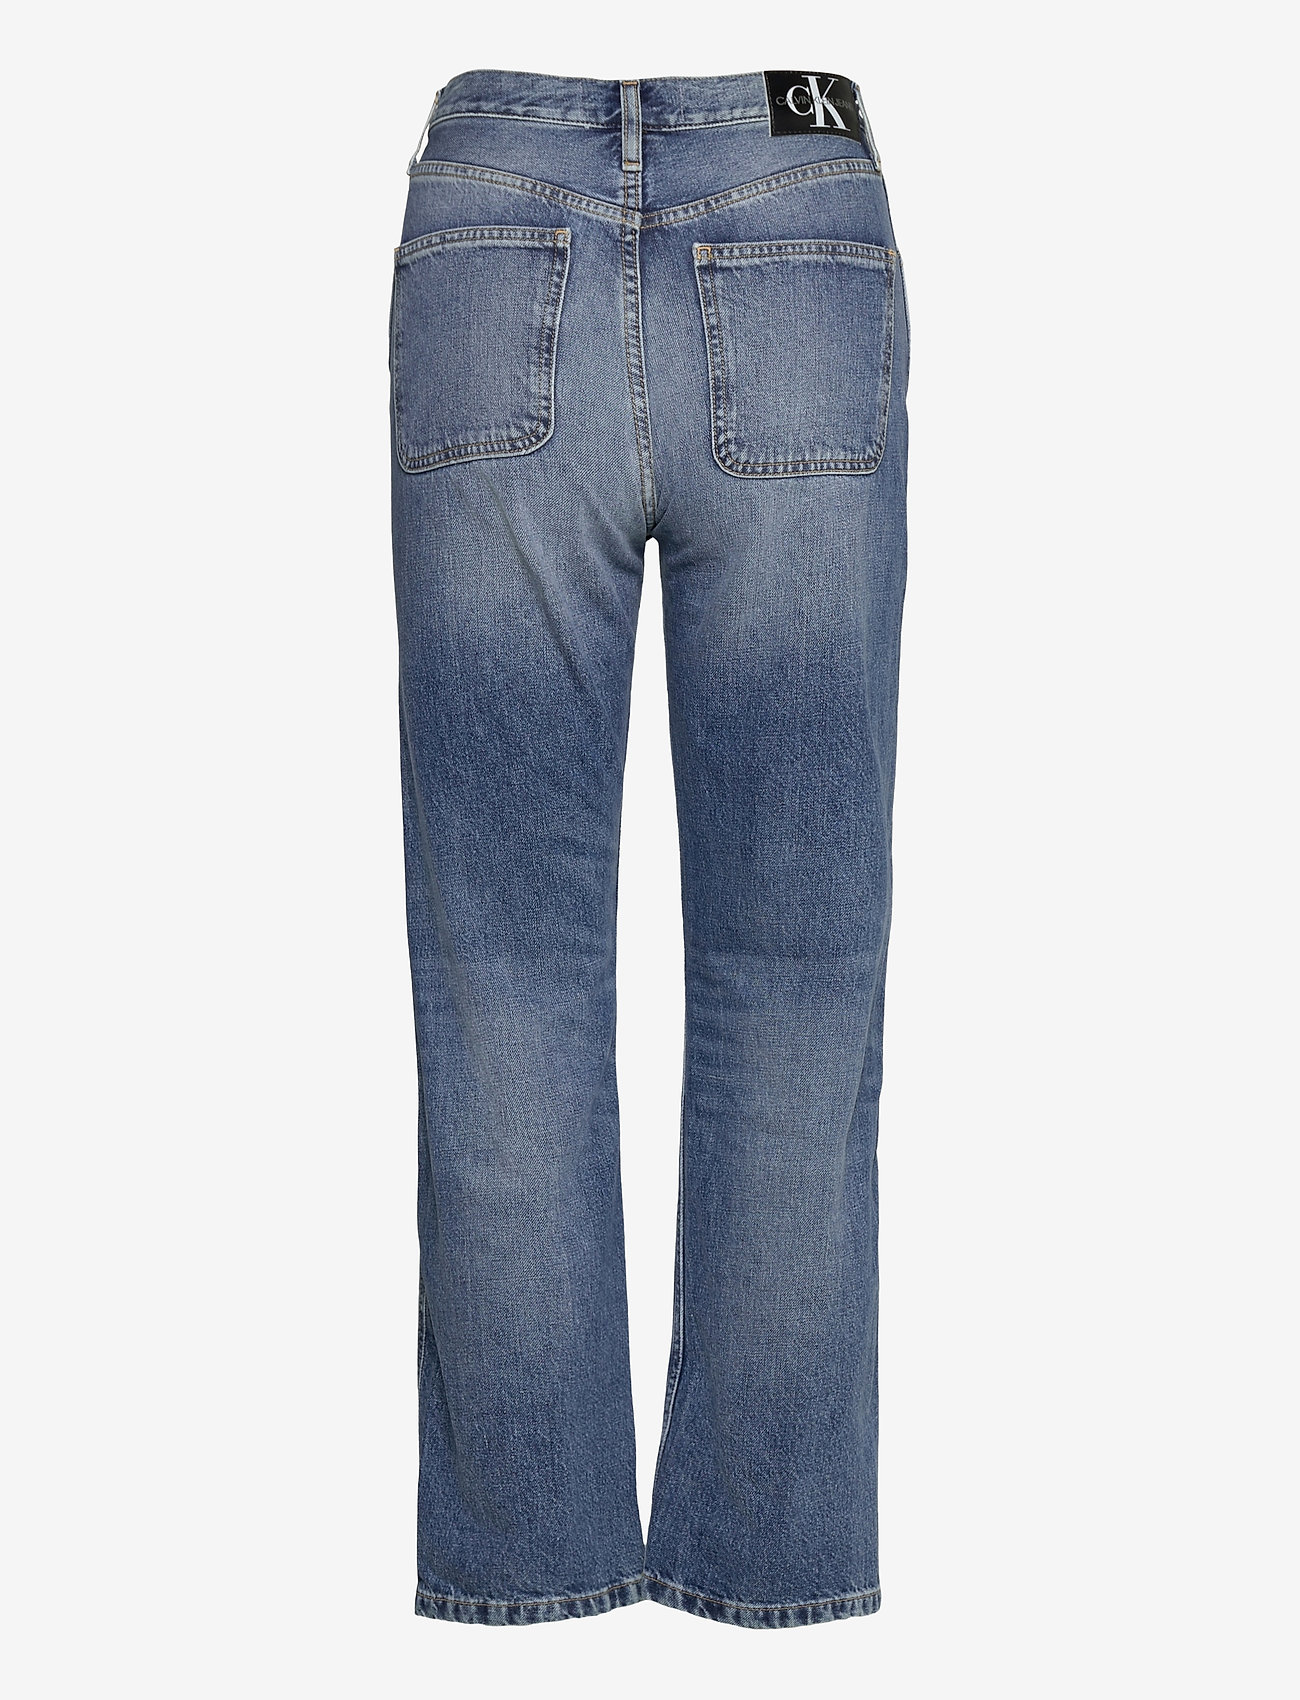 Calvin Klein Jeans - CKJ 030 HIGH RISE STRAIGHT ANKLE - straight jeans - bb047 - icn light blue utility - 1